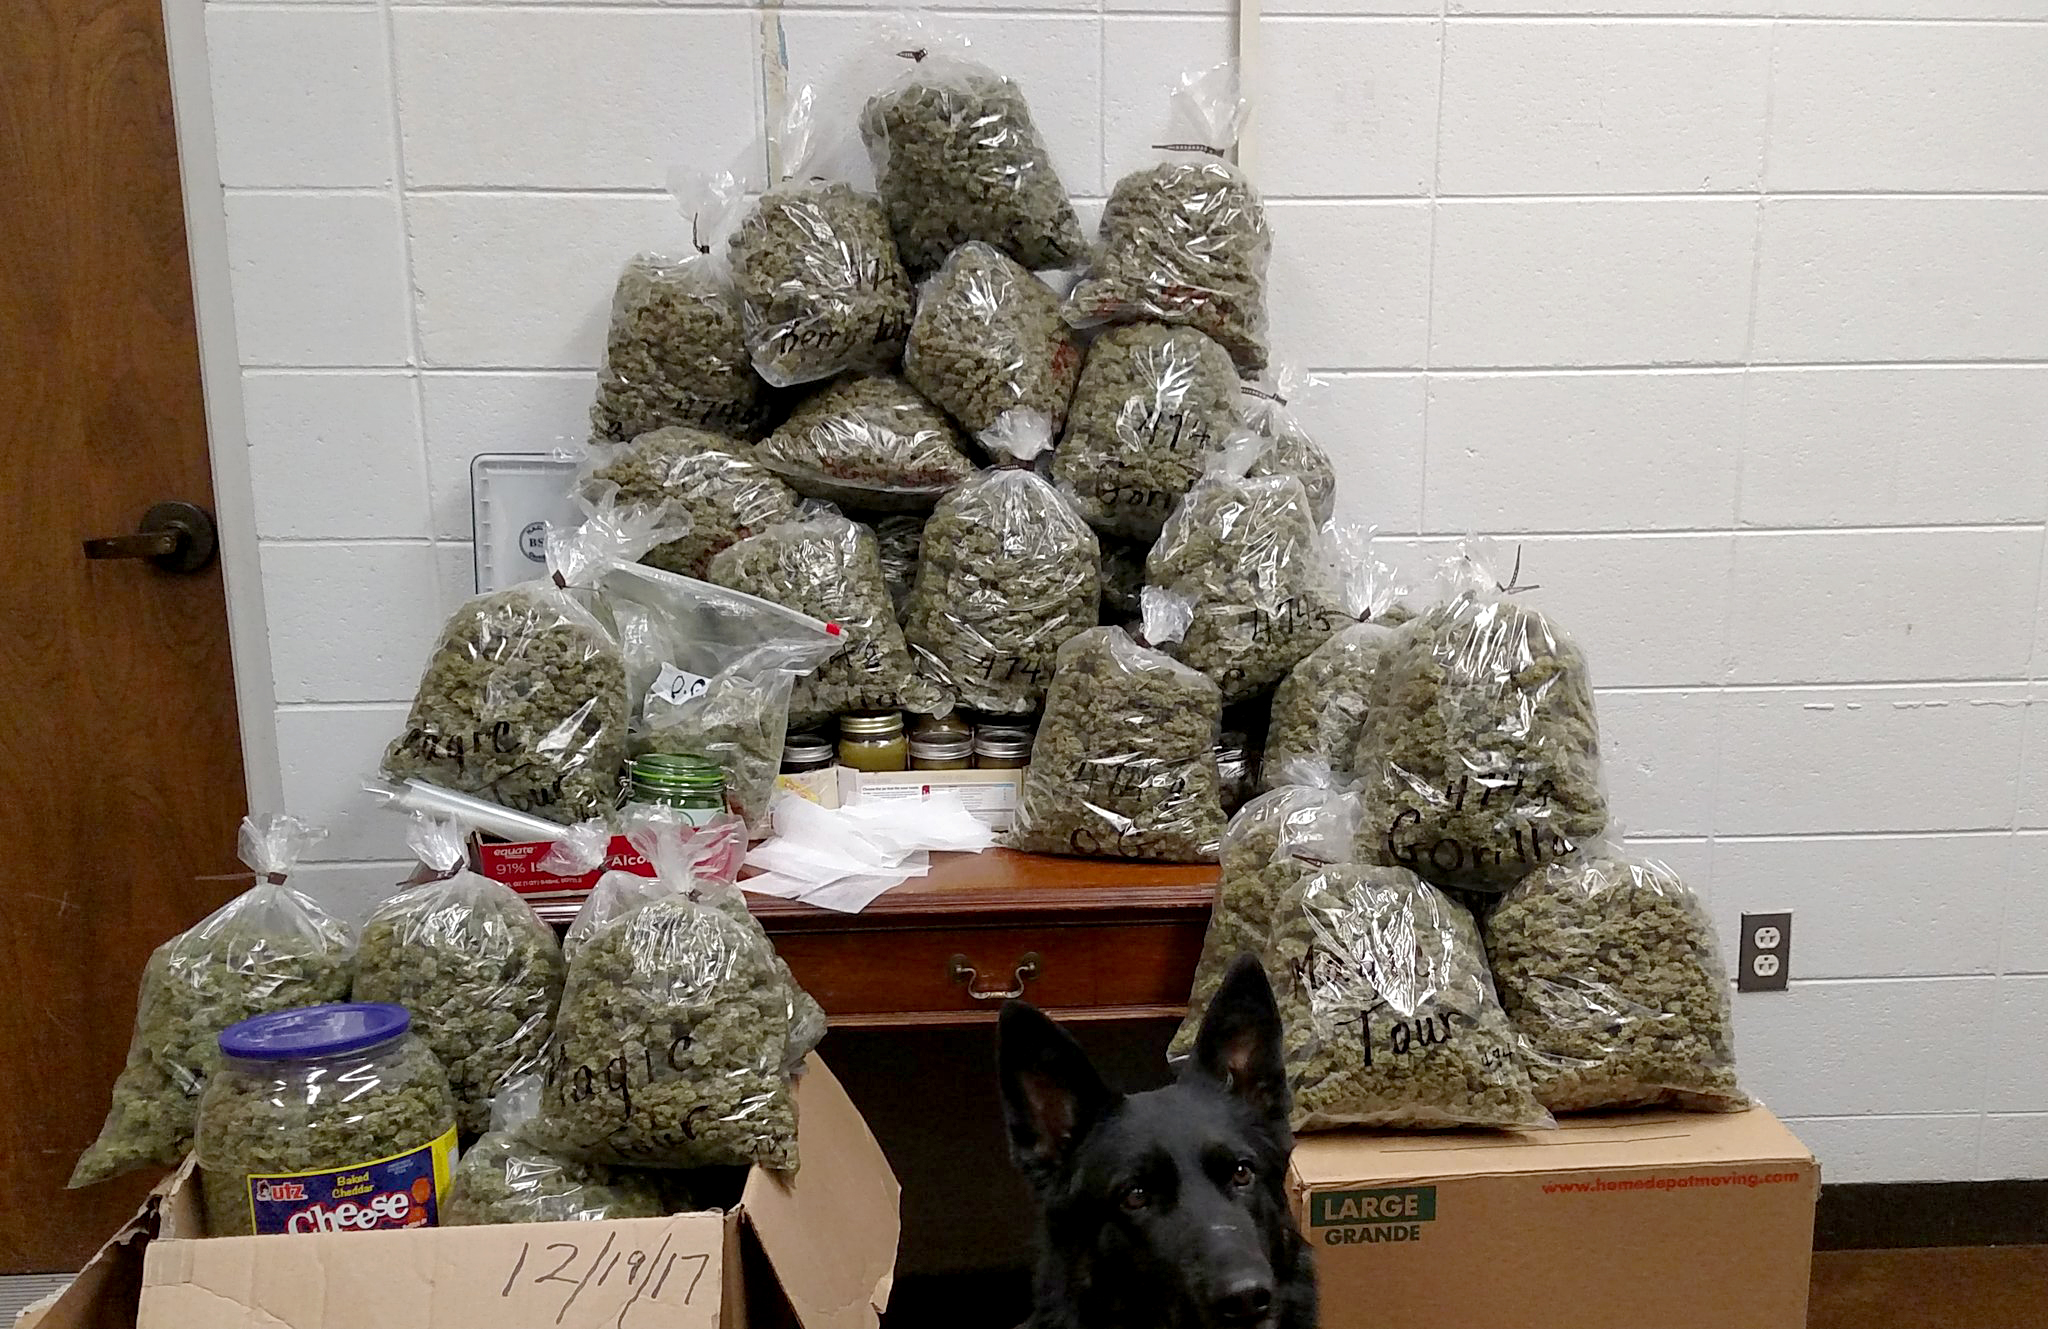 60 Pounds of Weed